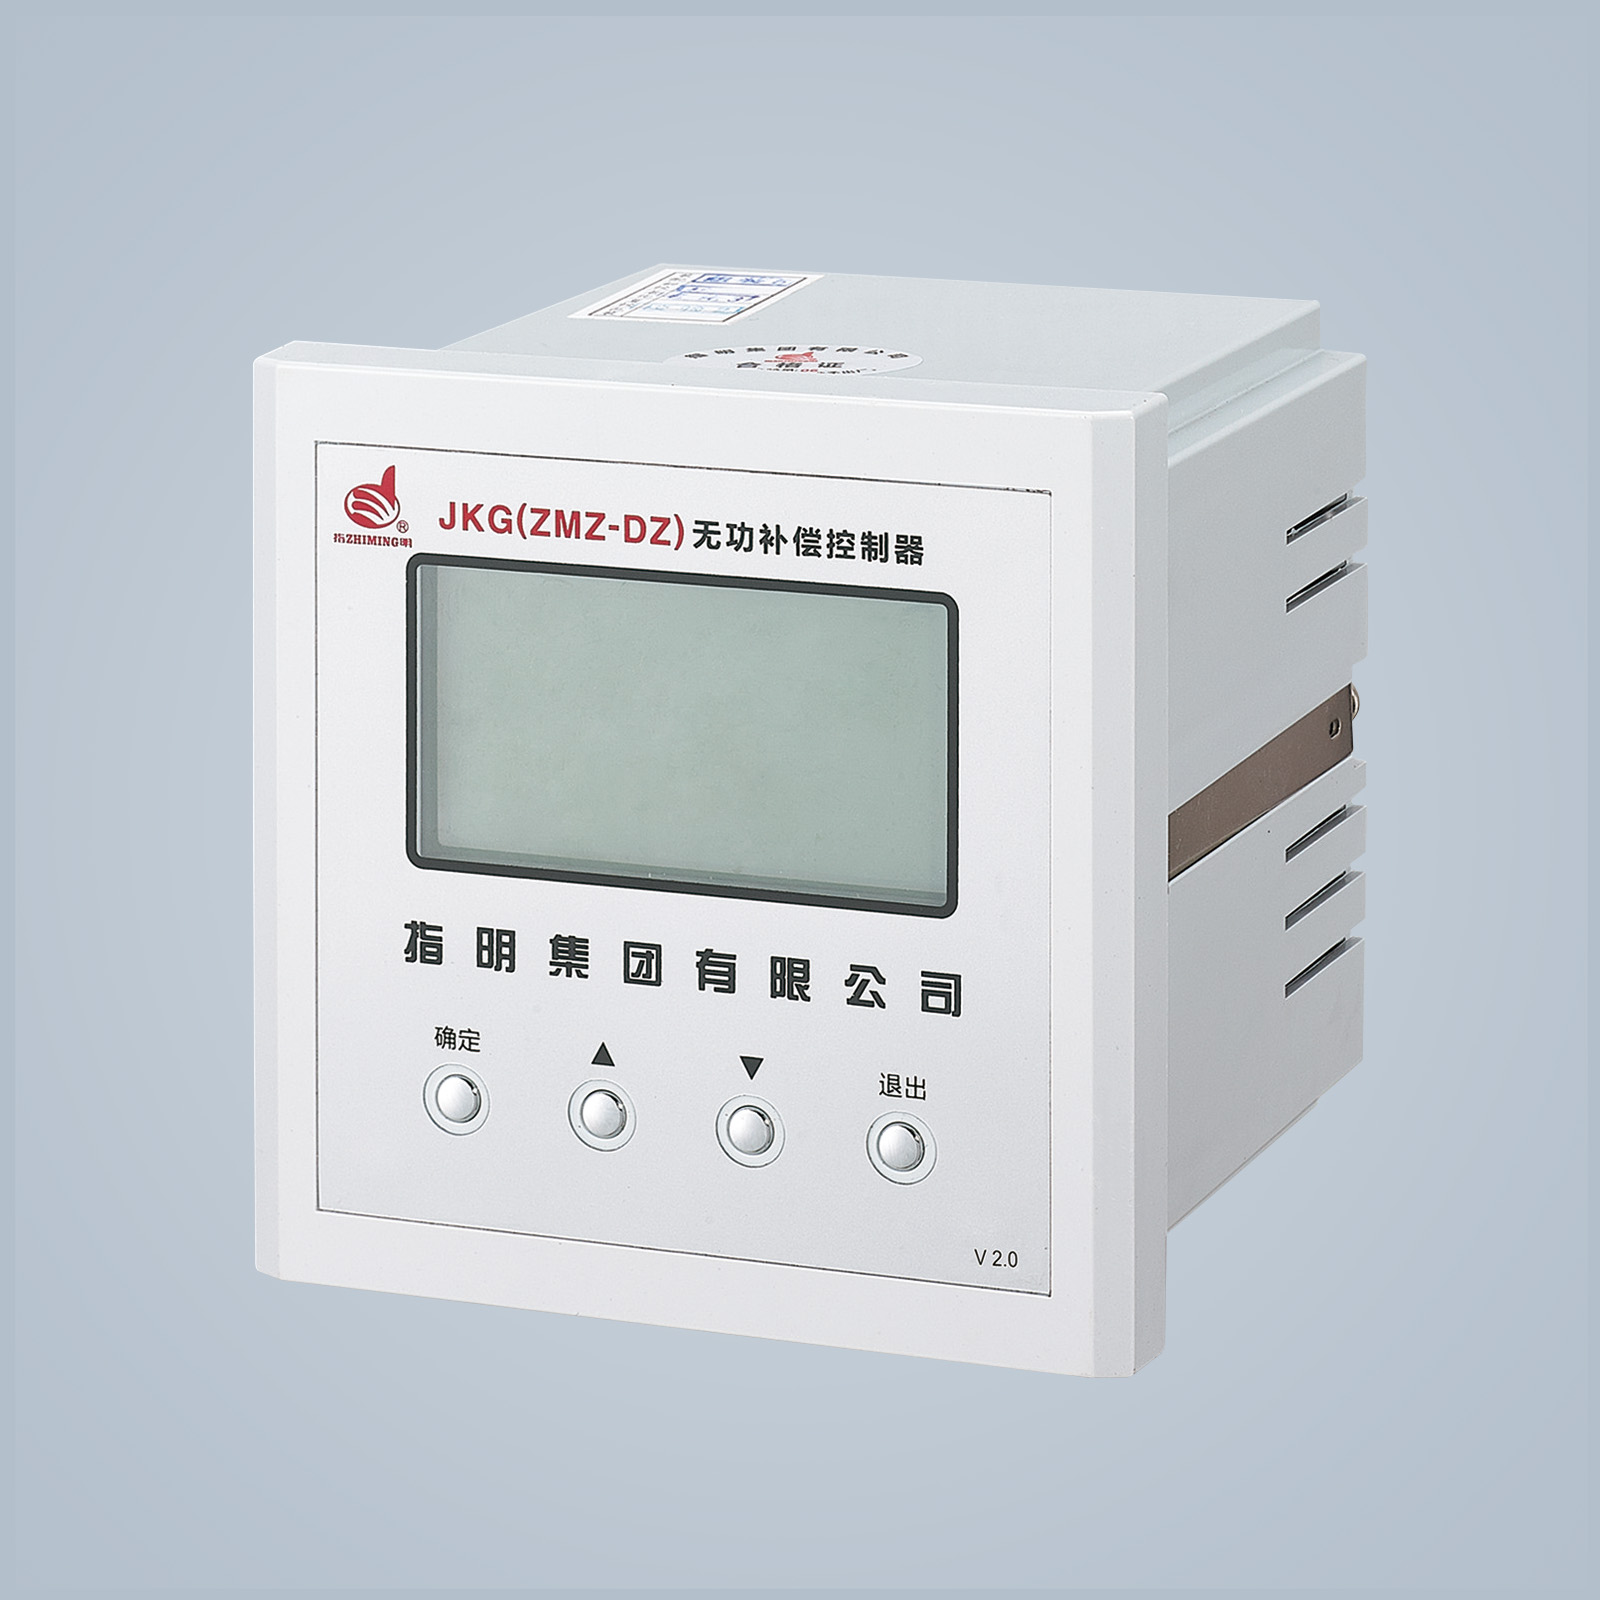 JKG-DZ Intelligent Type Reactive Controller (For ZMZ-C Intelligent Capacitor)